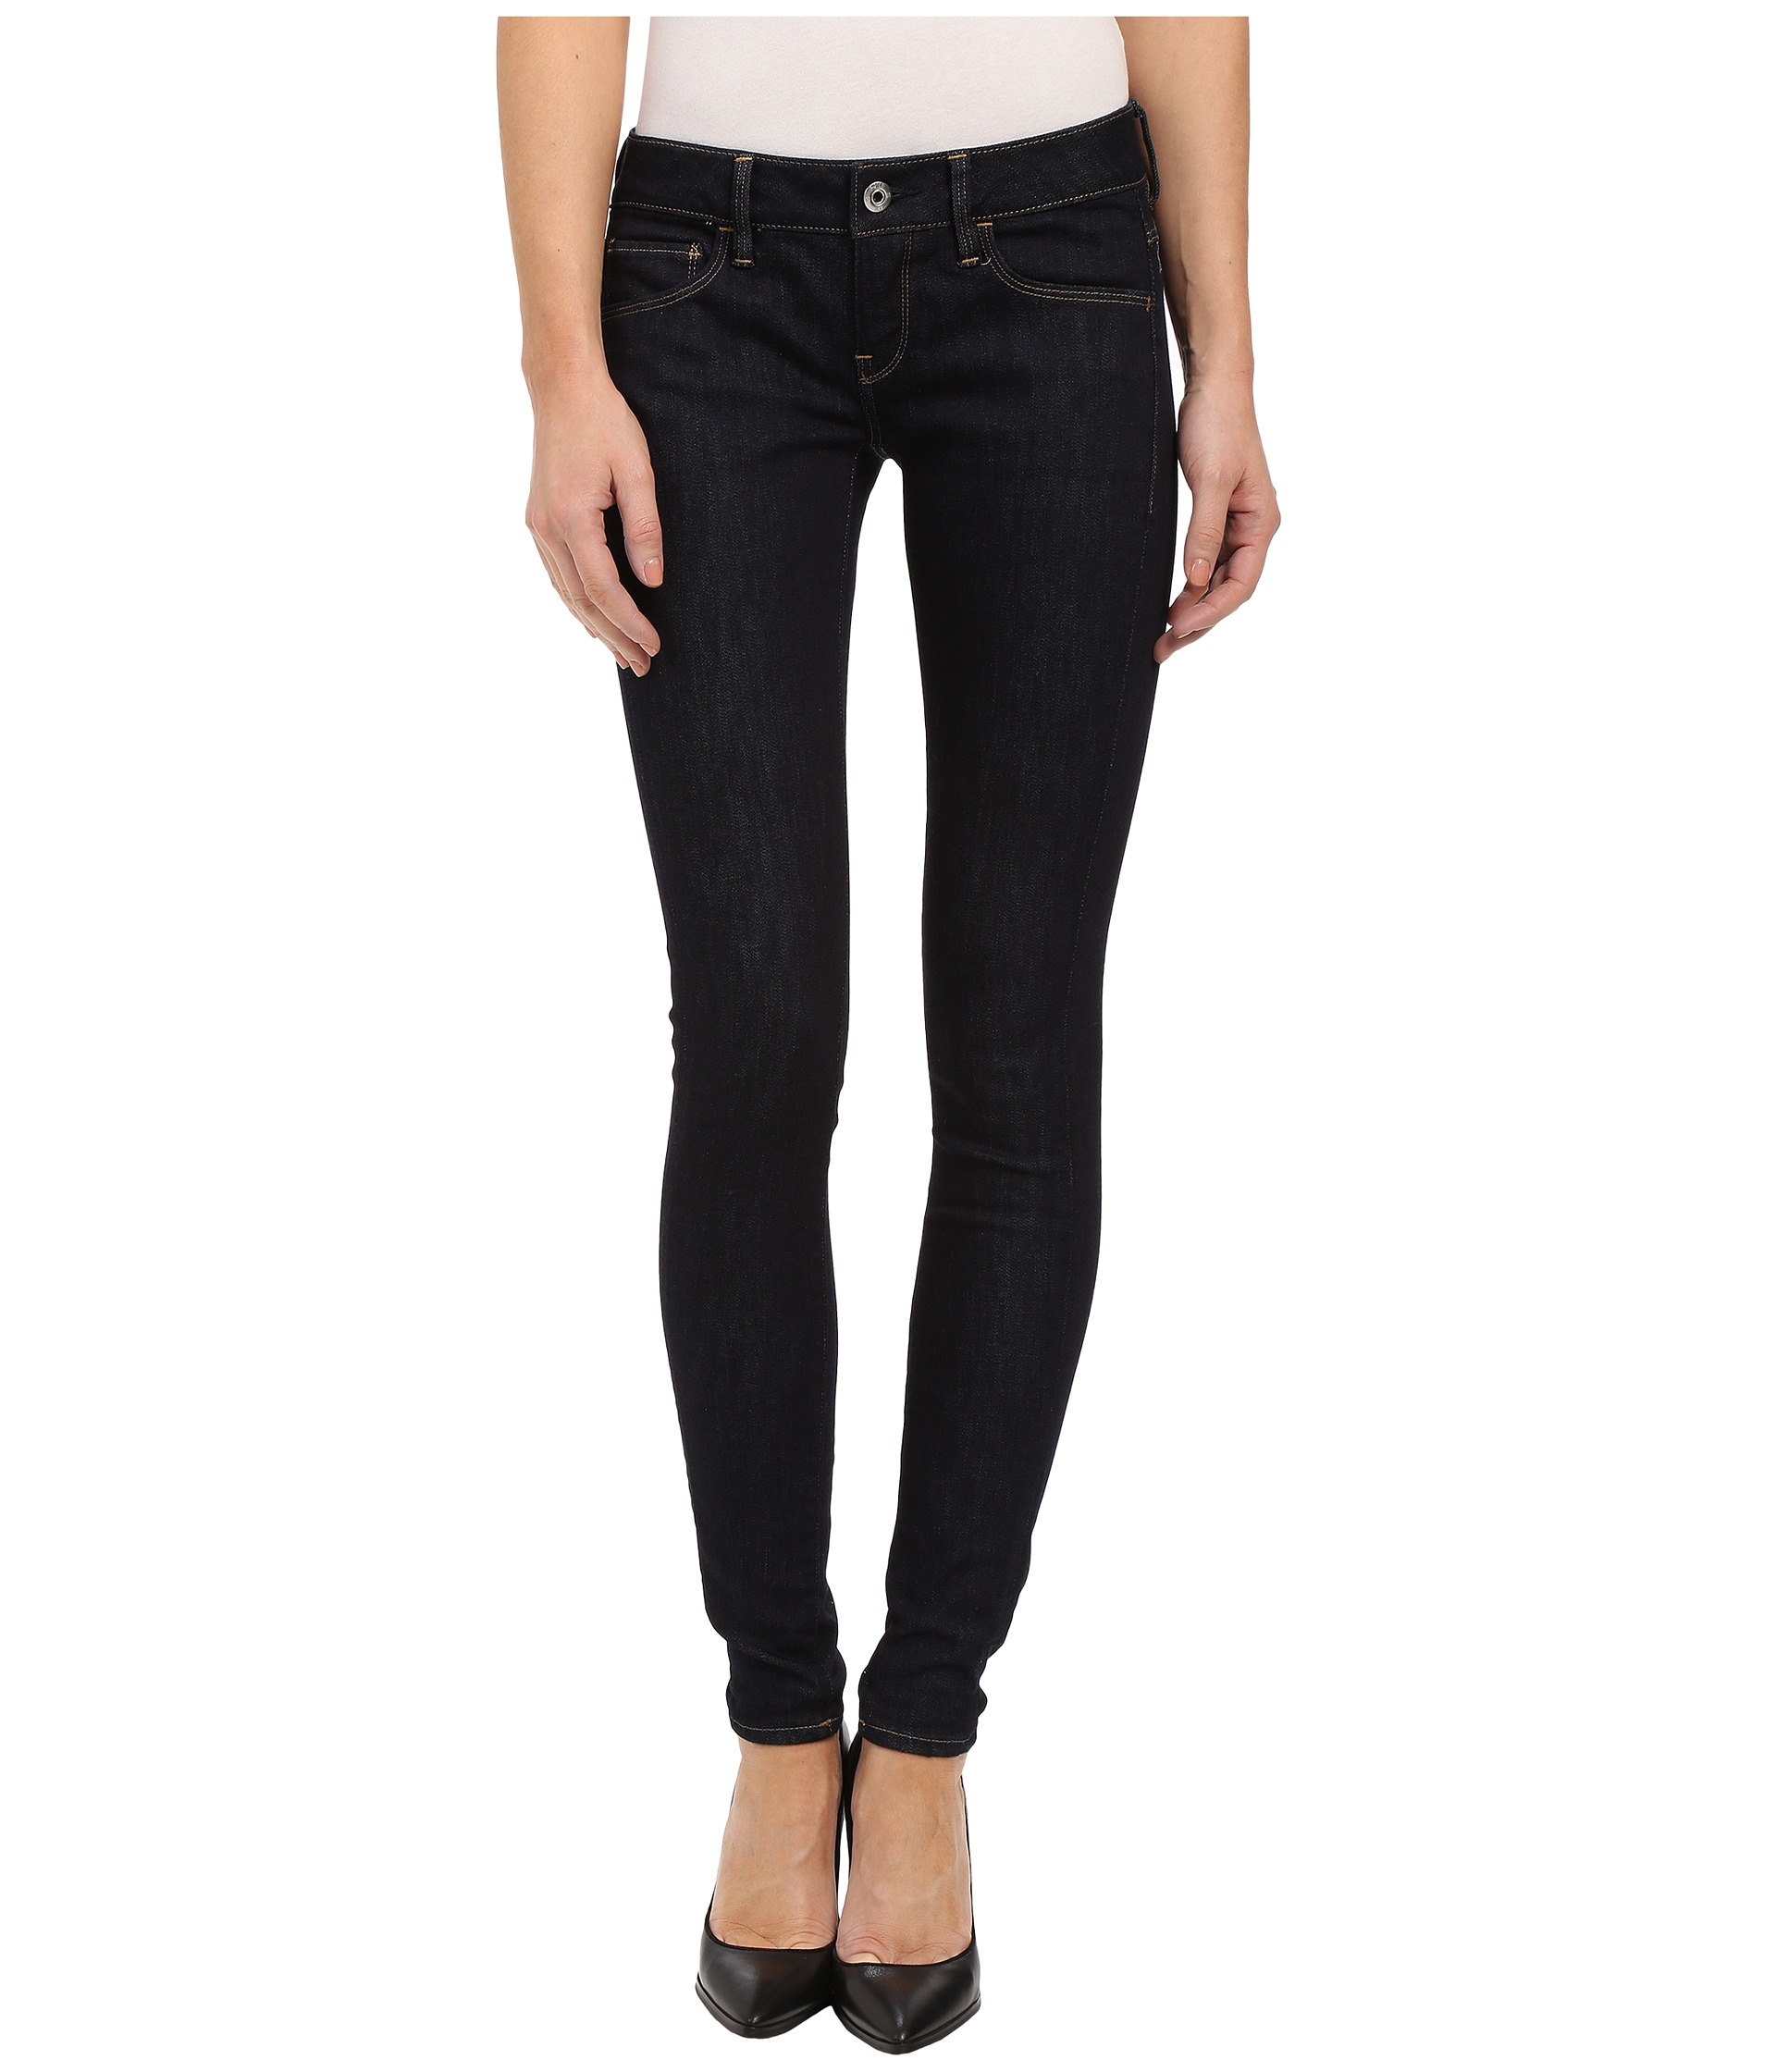 g star raw 3301 deconstructed low super skinny jeans in. Black Bedroom Furniture Sets. Home Design Ideas